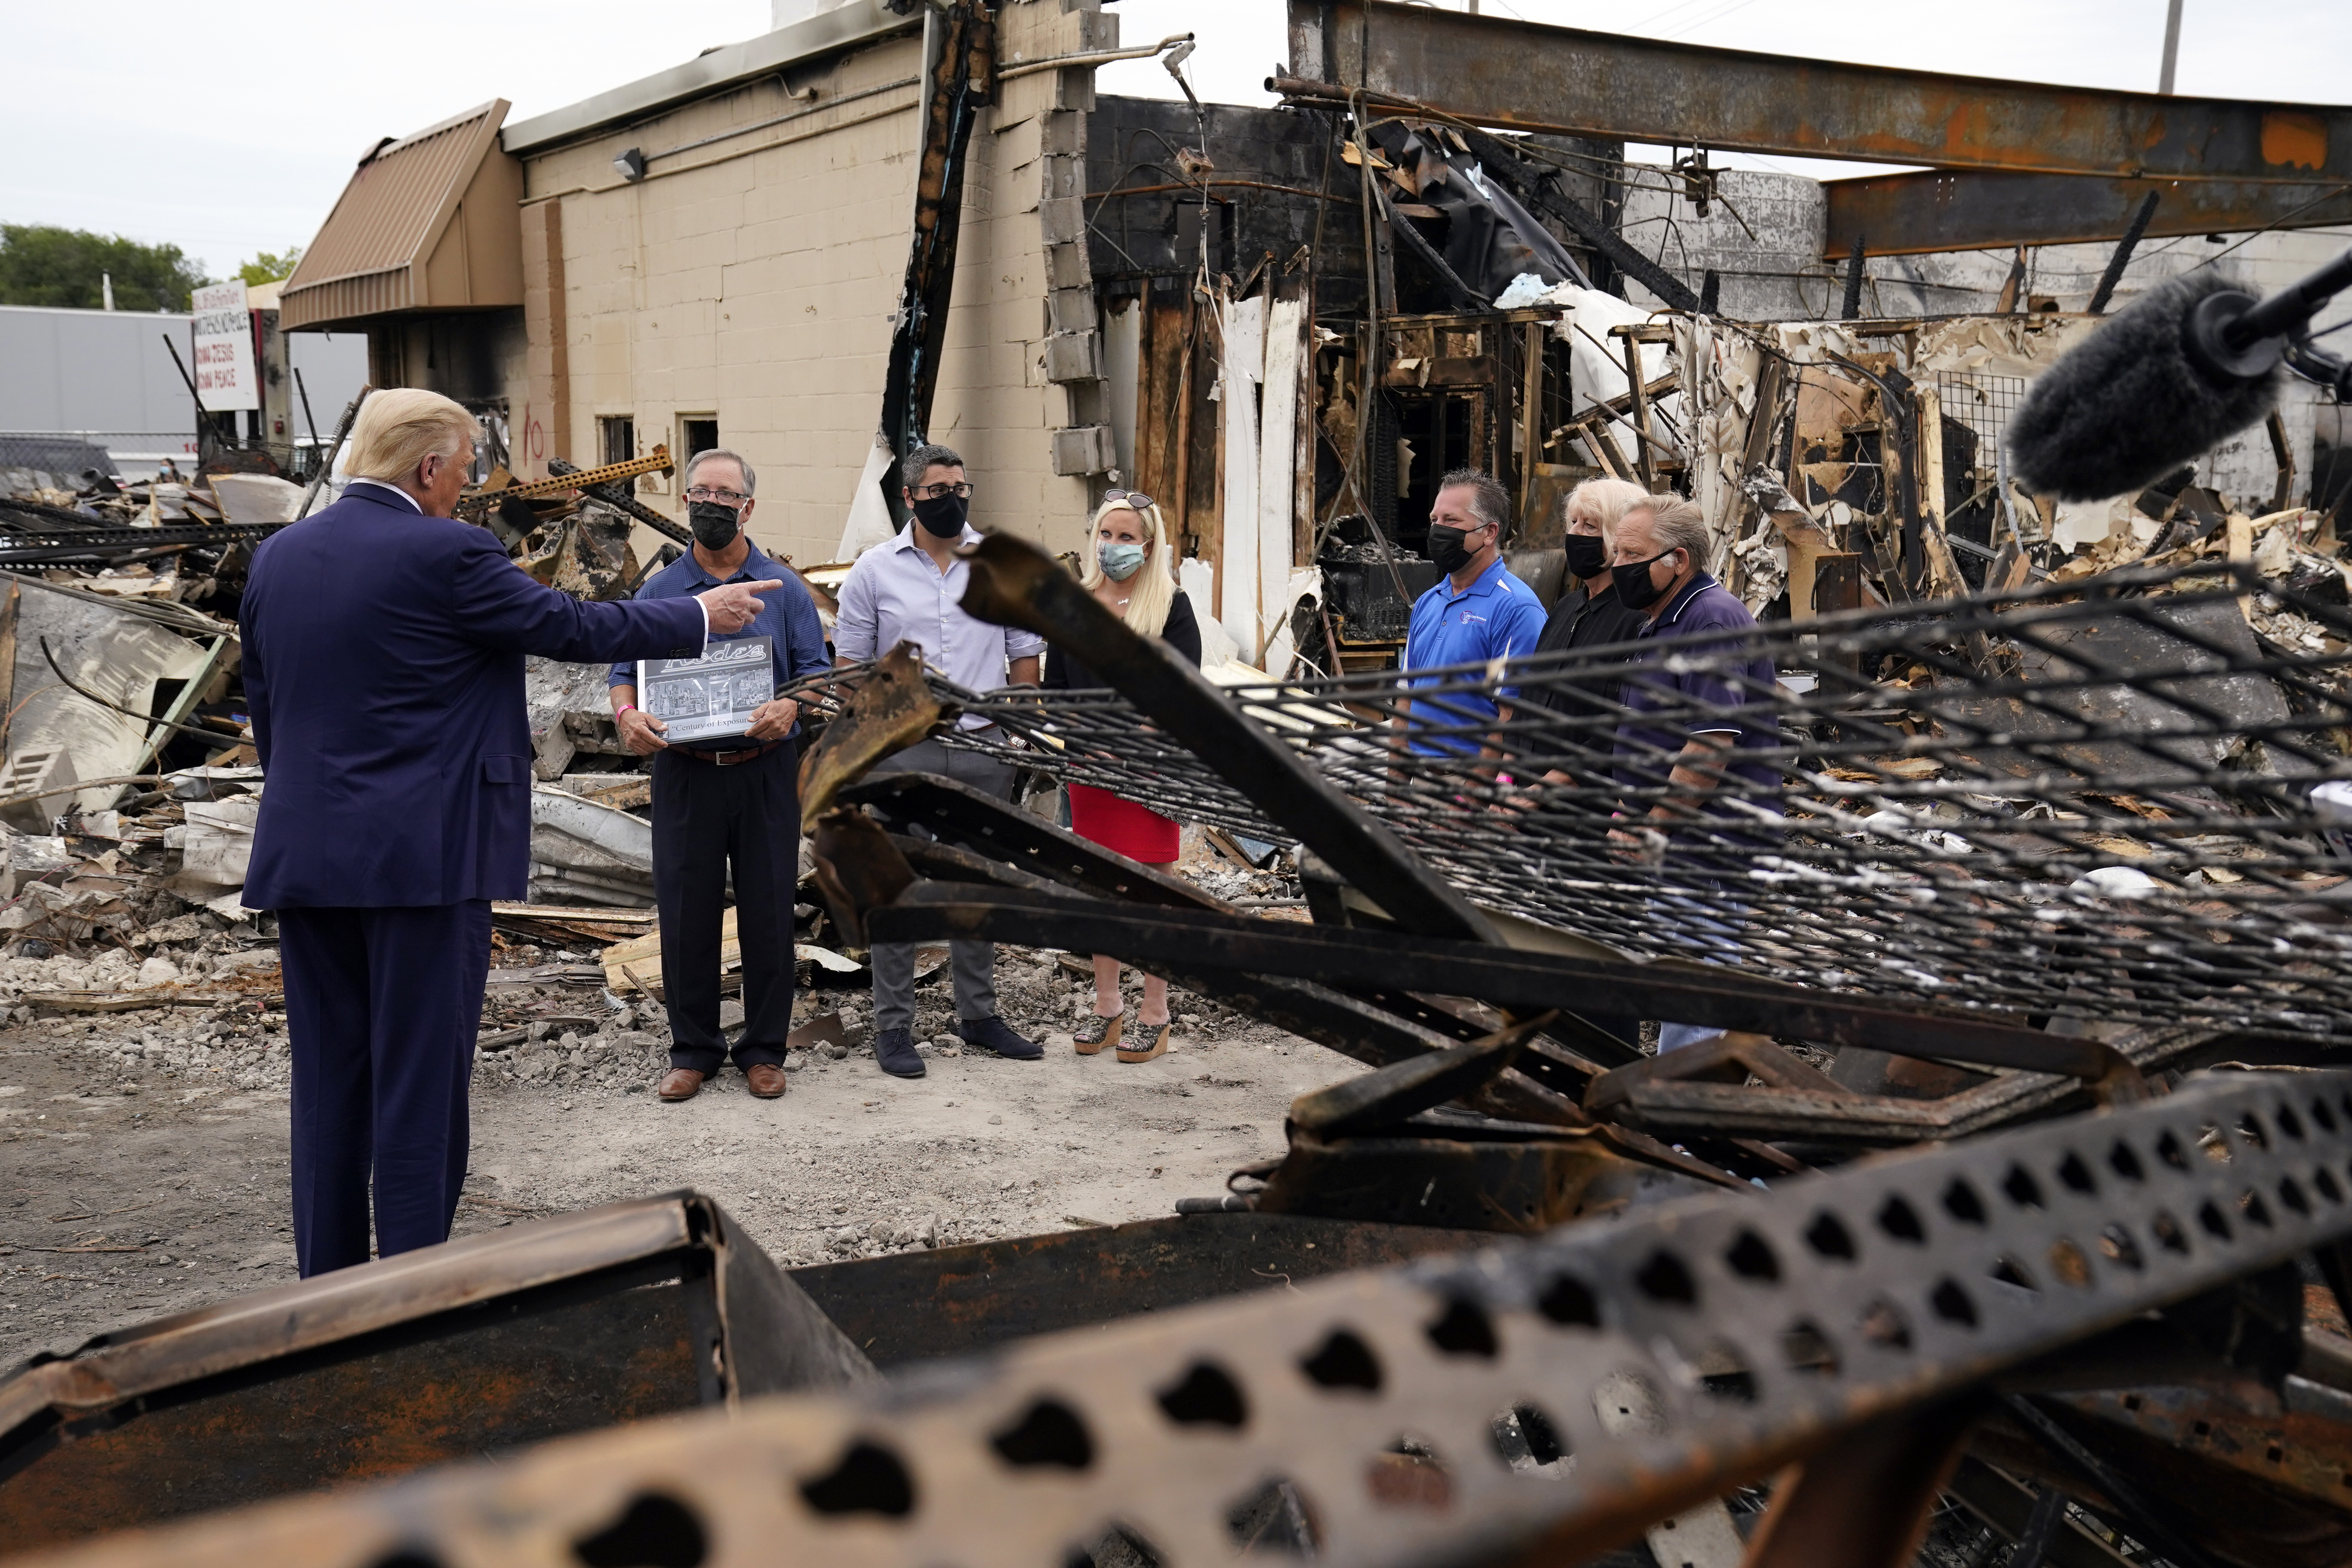 President Donald Trump talks to business owners as he tours an area damaged during demonstrations in Kenosha, Wis. on Sept. 1, 2020.